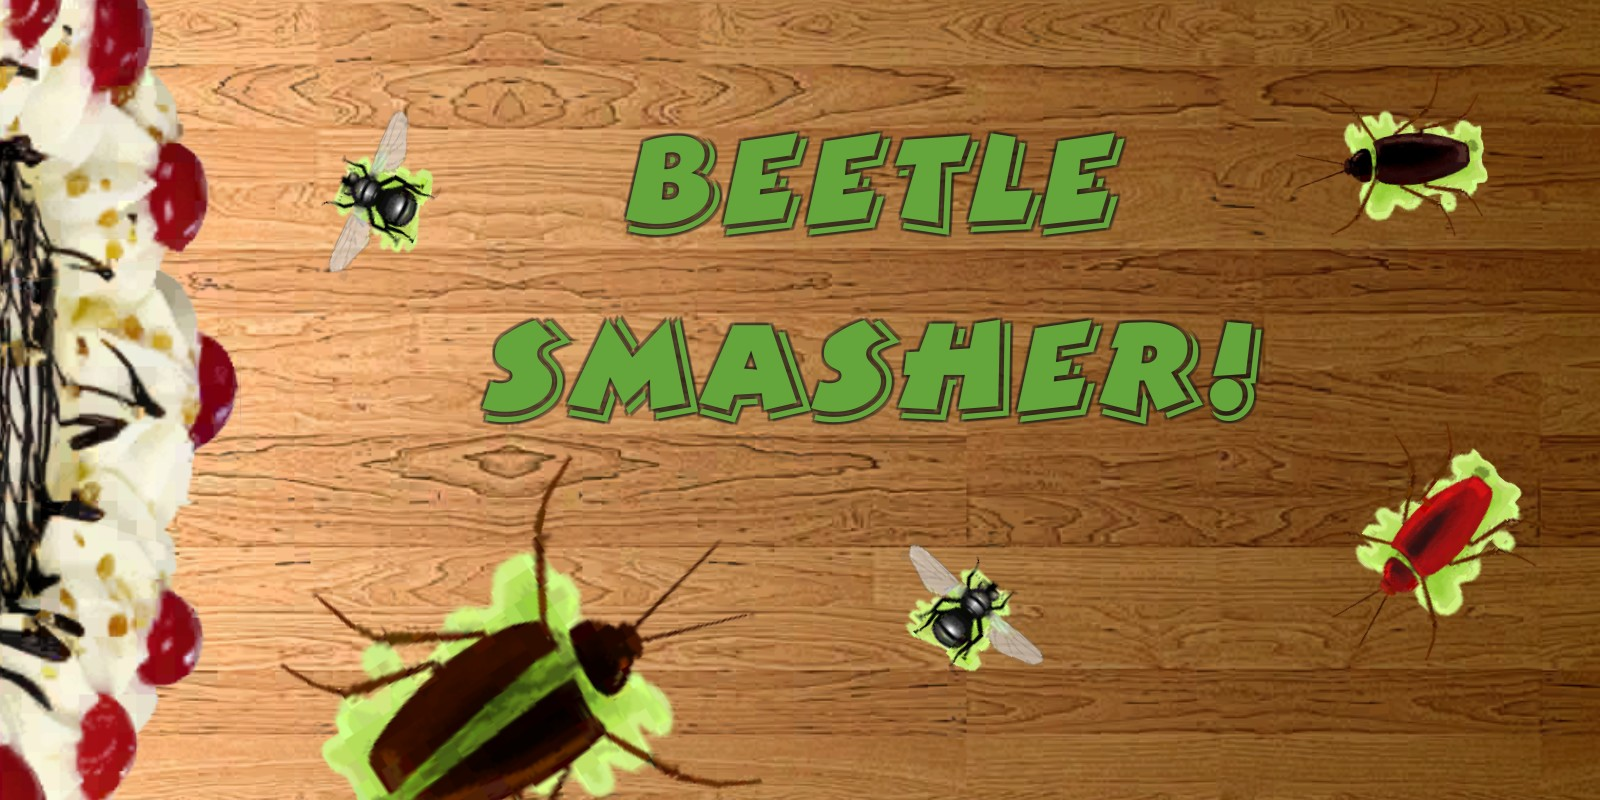 Beetle Smasher - Complete Unity Project